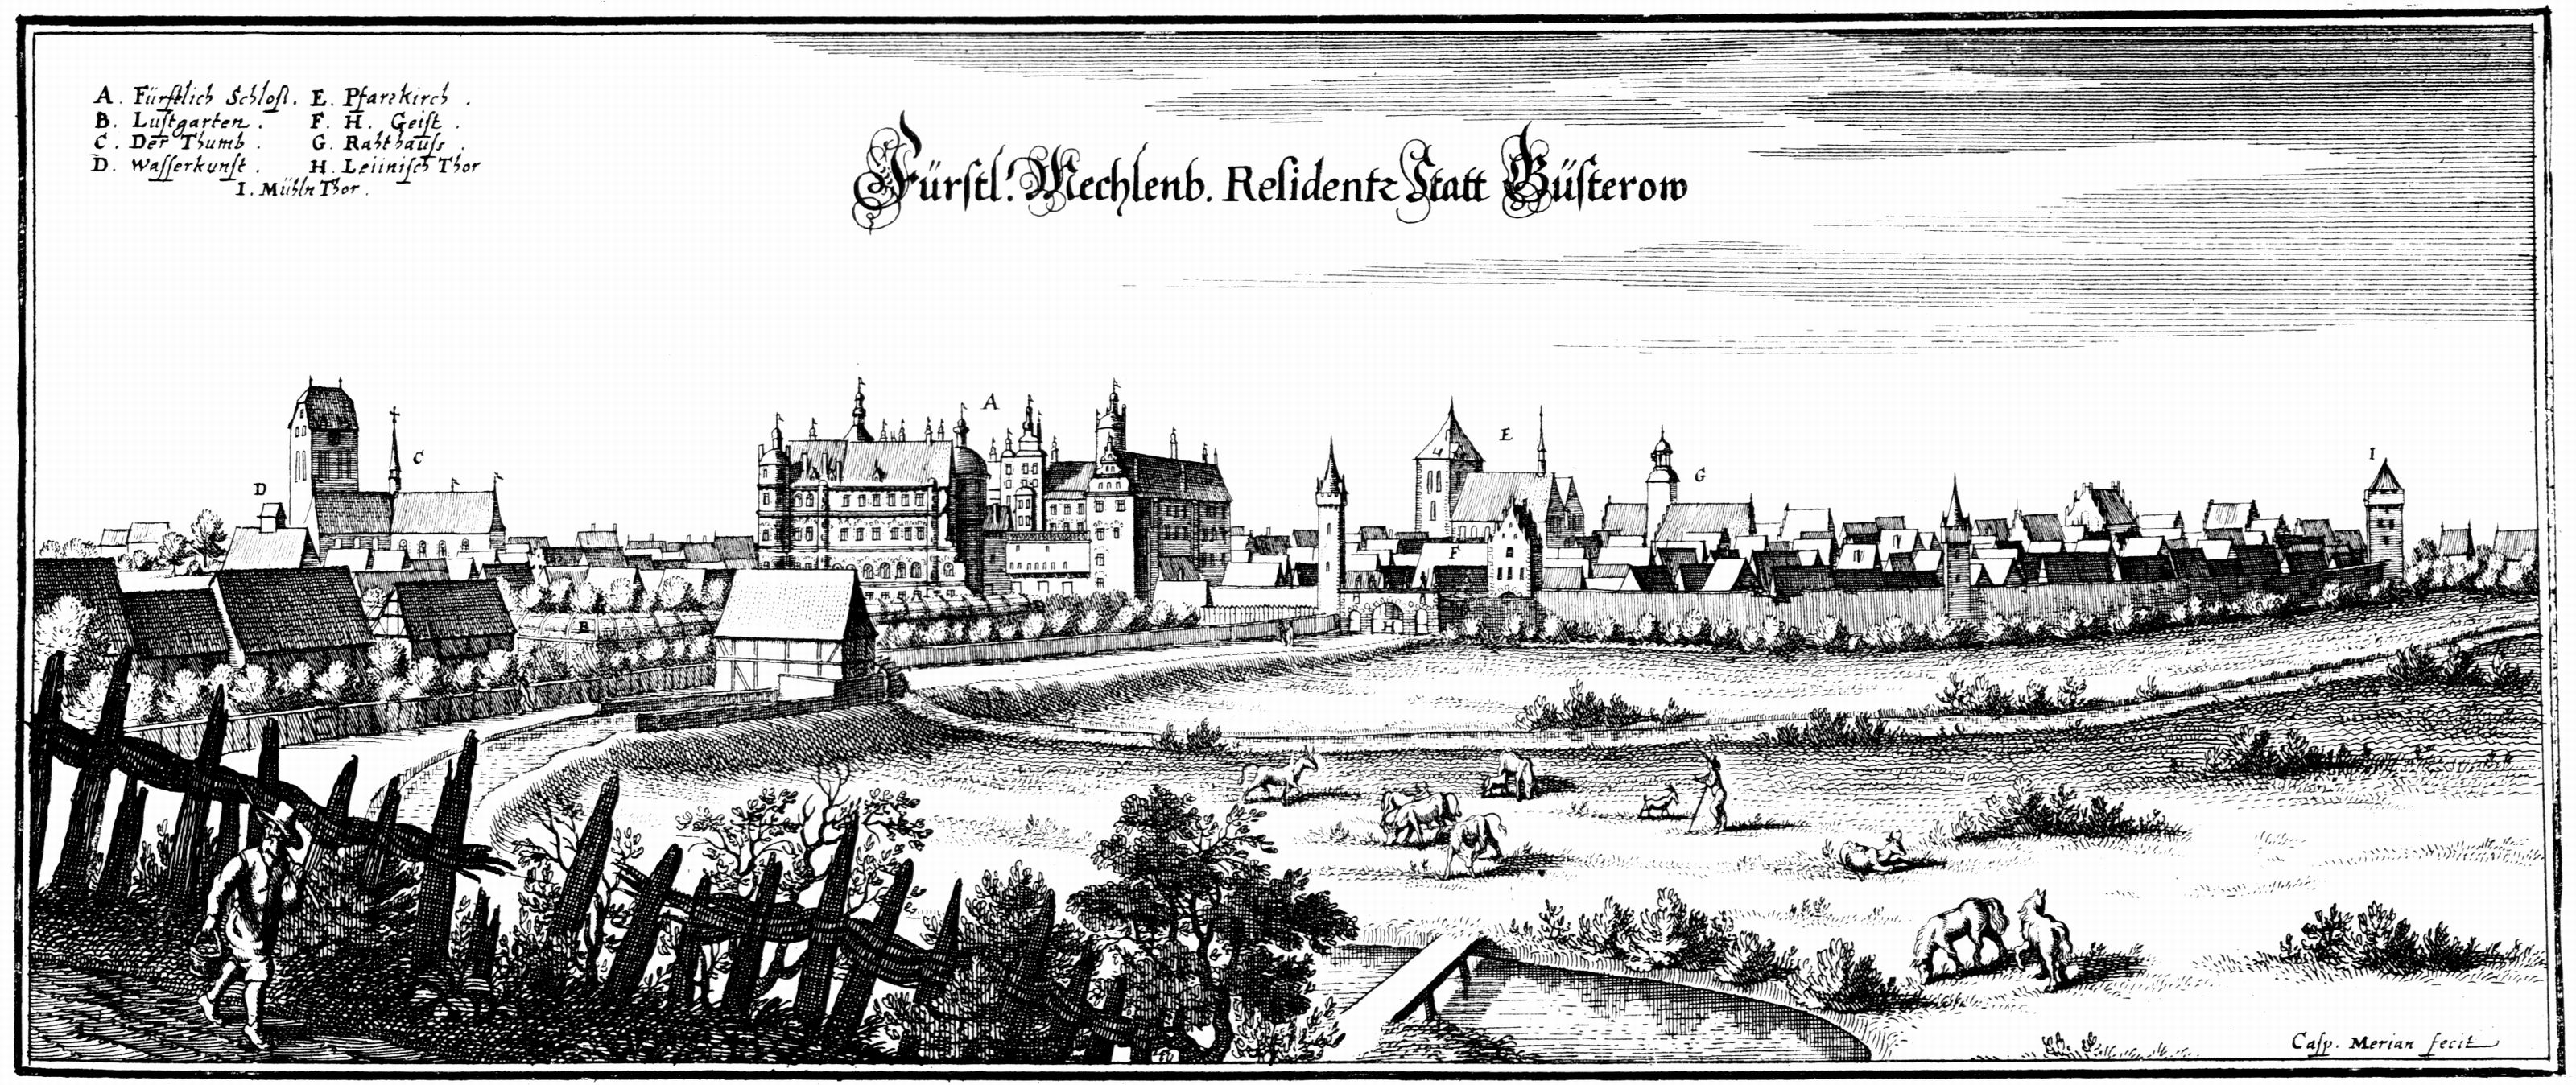 Cash Pool Niederlande Datei Guestrow 1653 Merian Jpg Wikipedia